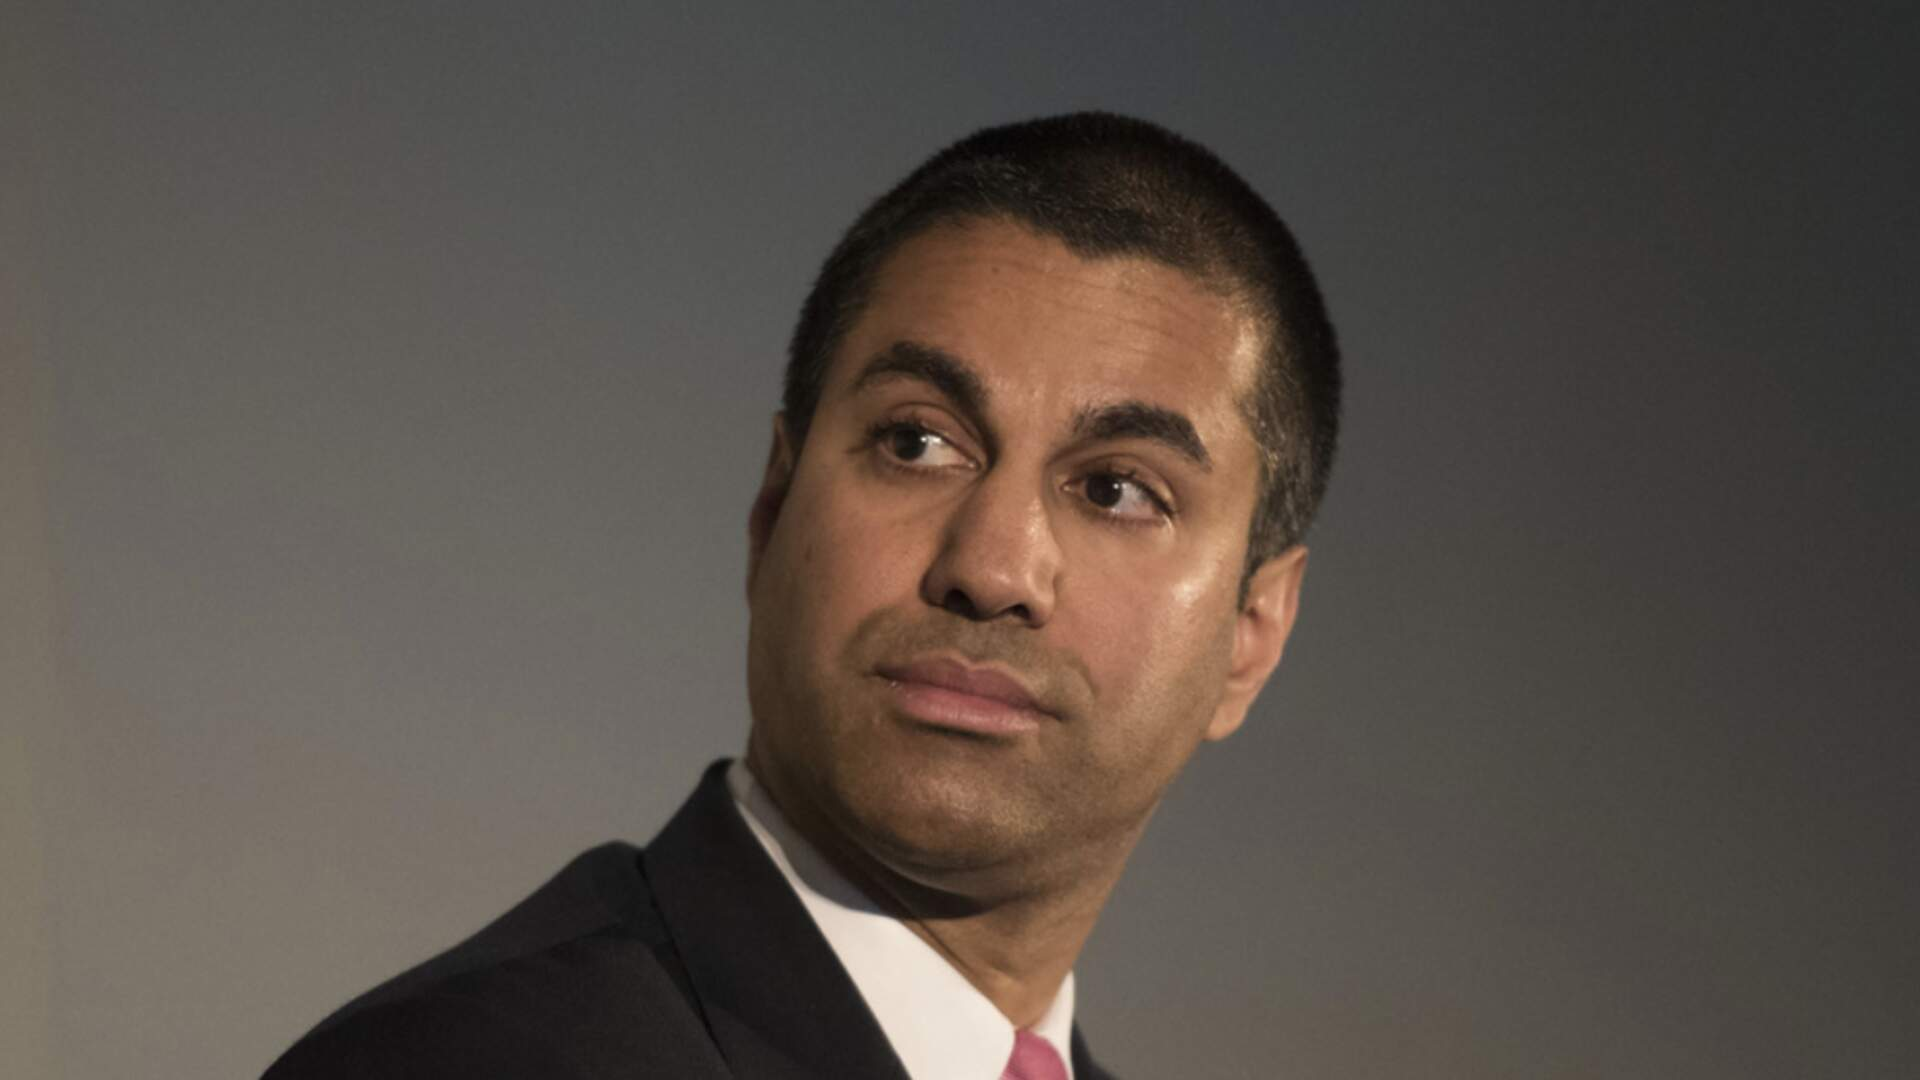 The FCC Votes to Rip Apart Net Neutrality